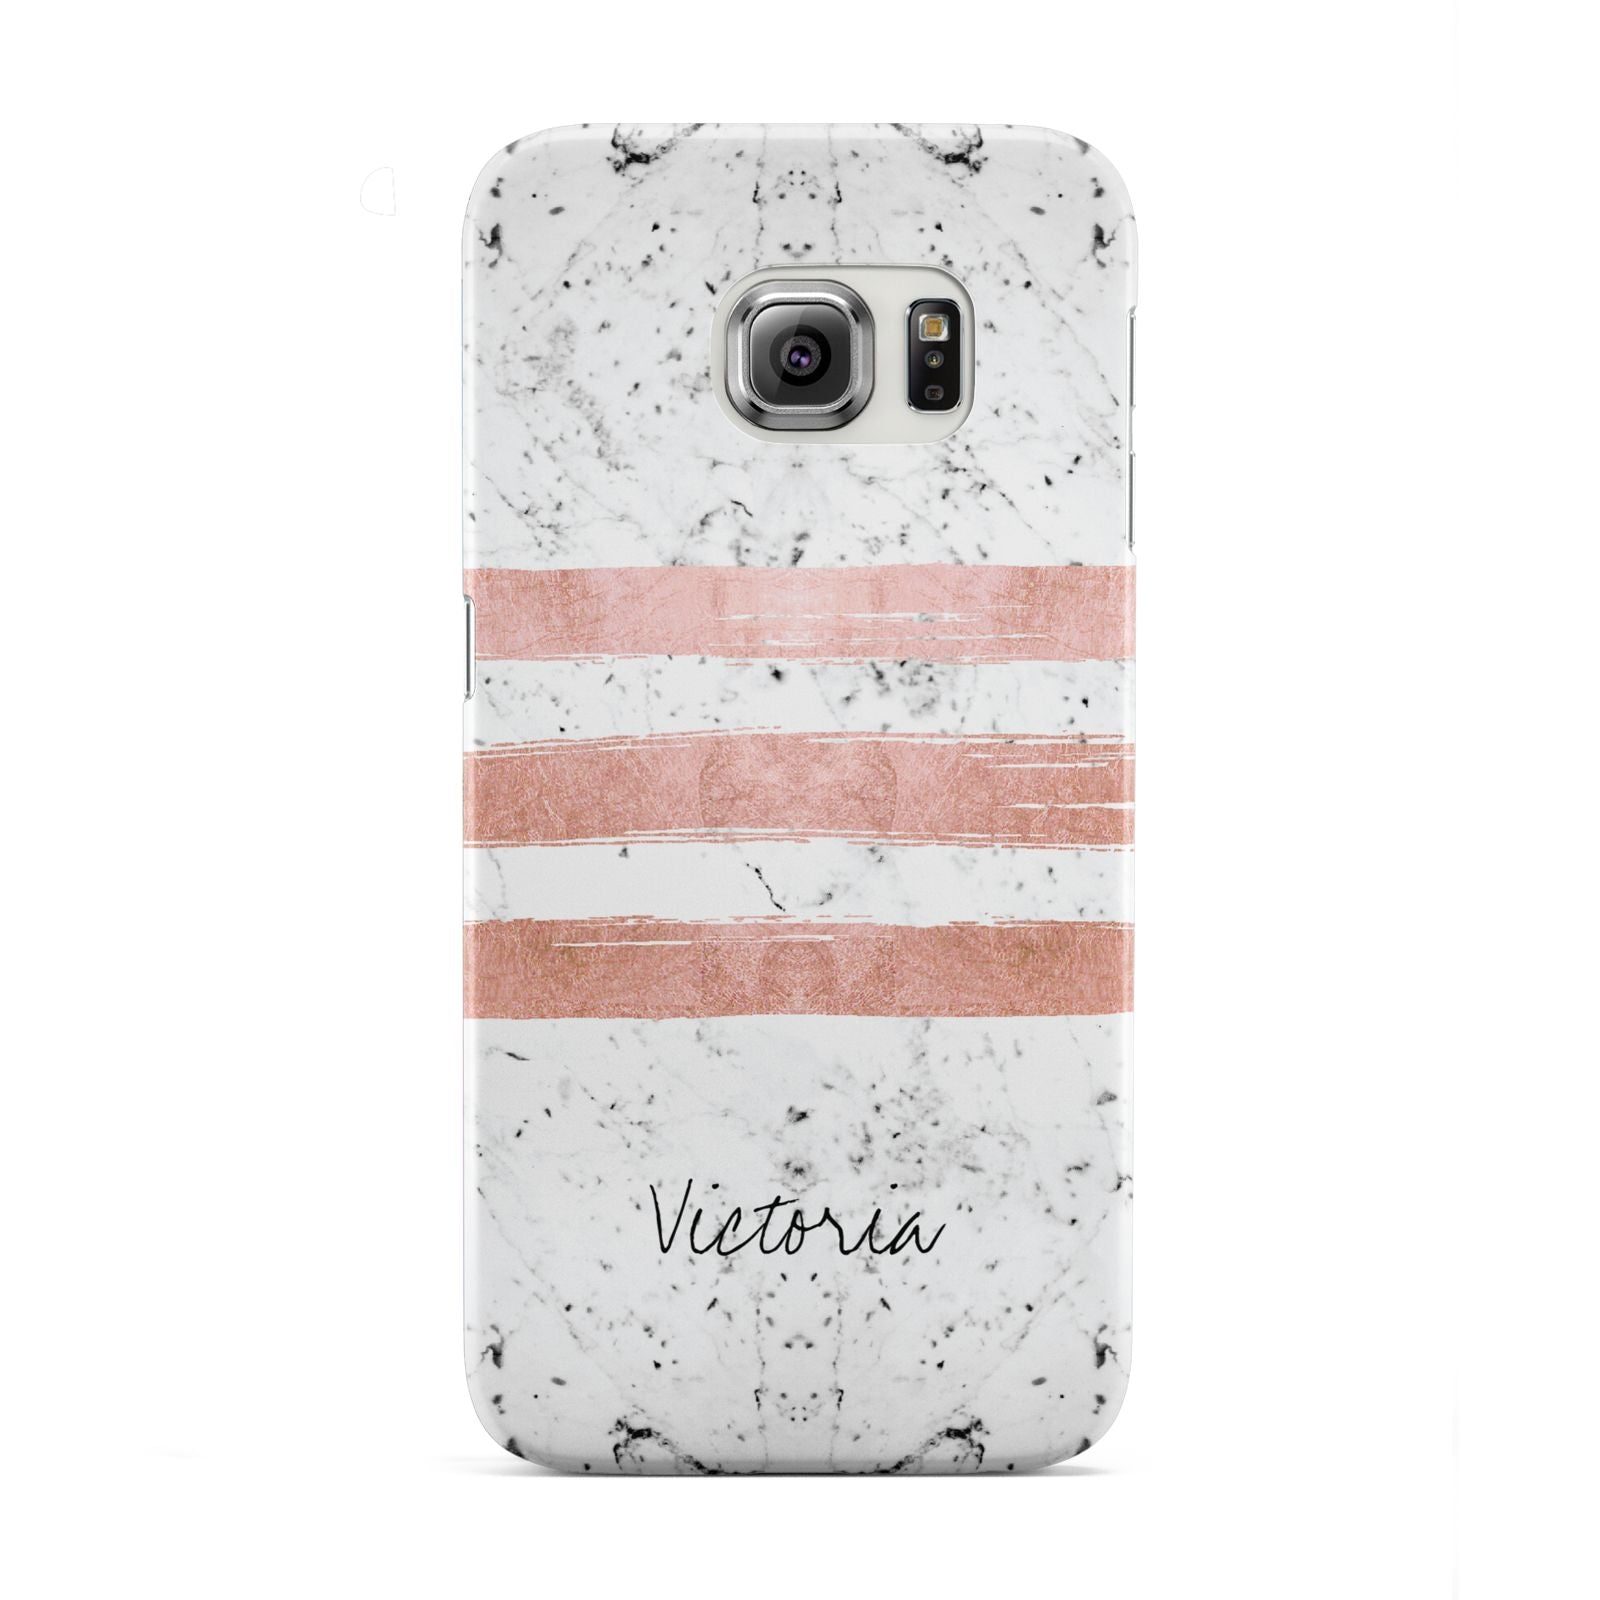 Personalised Rose Gold Brush Marble Initial Samsung Galaxy S6 Edge Case